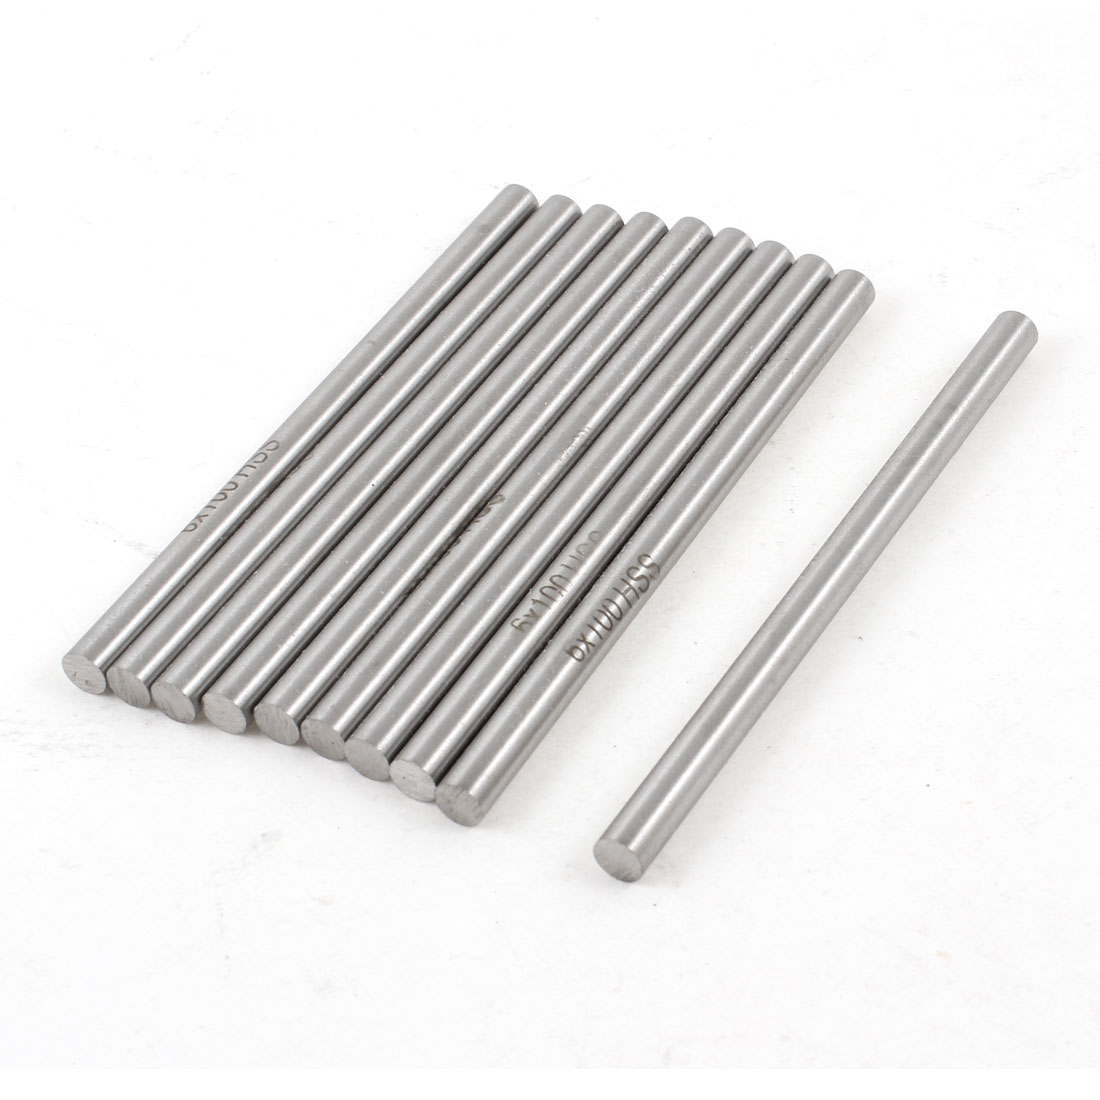 10 Pcs 6mm x 100mm HSS High Speed Steel Turning Bars for CNC Lathe